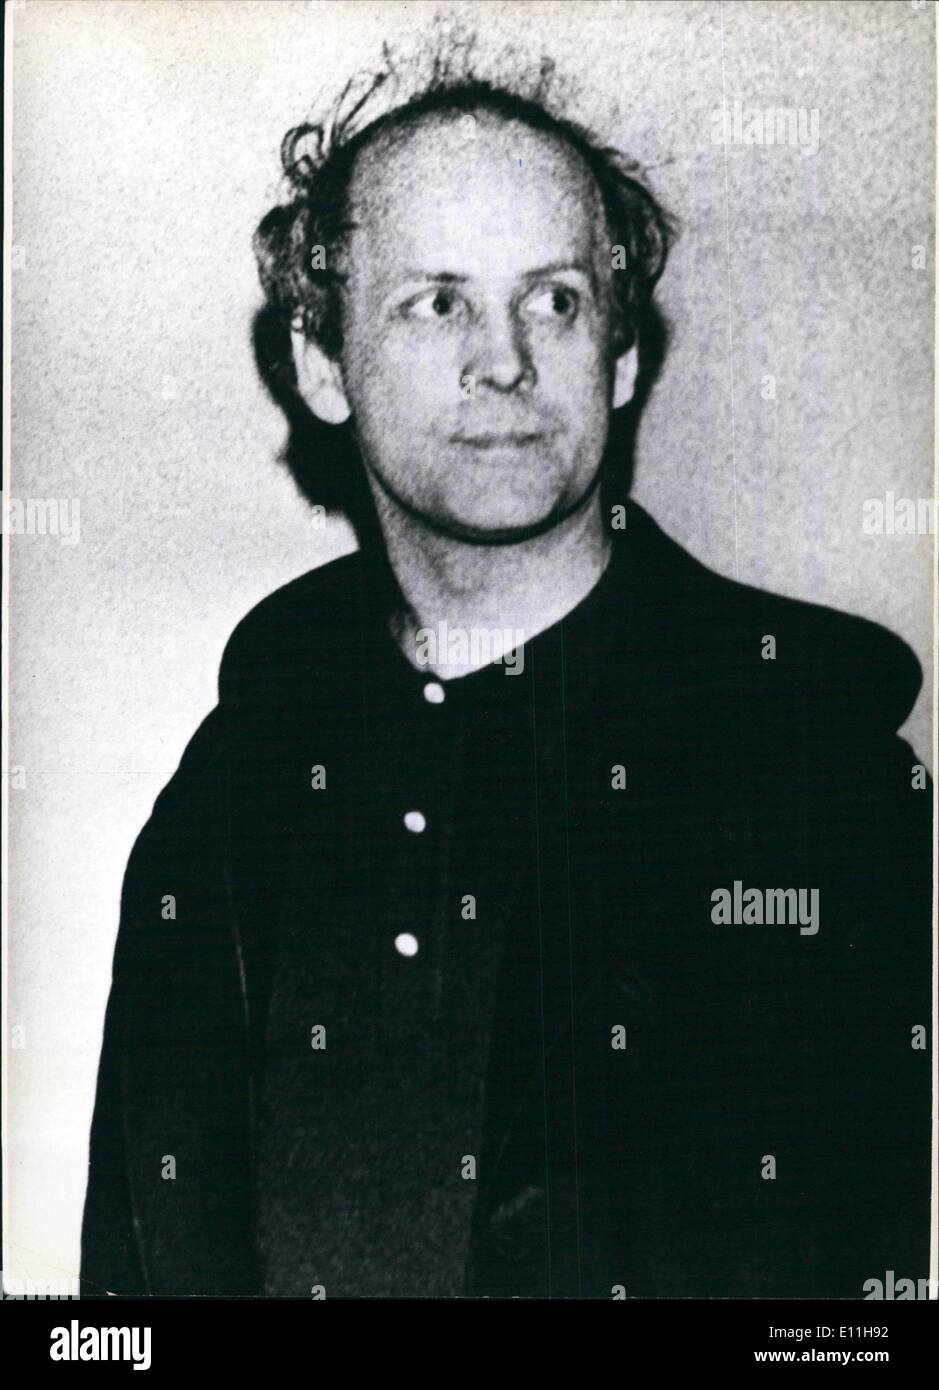 Jan. 01, 1978 - Opening Of The Trial Against Lawyer Groenewold At Hamburg: On January 18th, 1978 at Hamburg there will be opened the trial aganist Kurt Groenewold. The Hamburg lawyer is indicated for support of a criminal alliance, the so-called ''Baadar-Meinhof-Bande'' (RAF/ Rote Armes Fraktion). Between 1973 and 1975 Kurt Groenewold has been - alternating - the advocate of Andrea Baader, Gudrun Ensslin, Ulrike Meinhof and Jan Carl Raspe, the leading members of the RAF - Stock Image